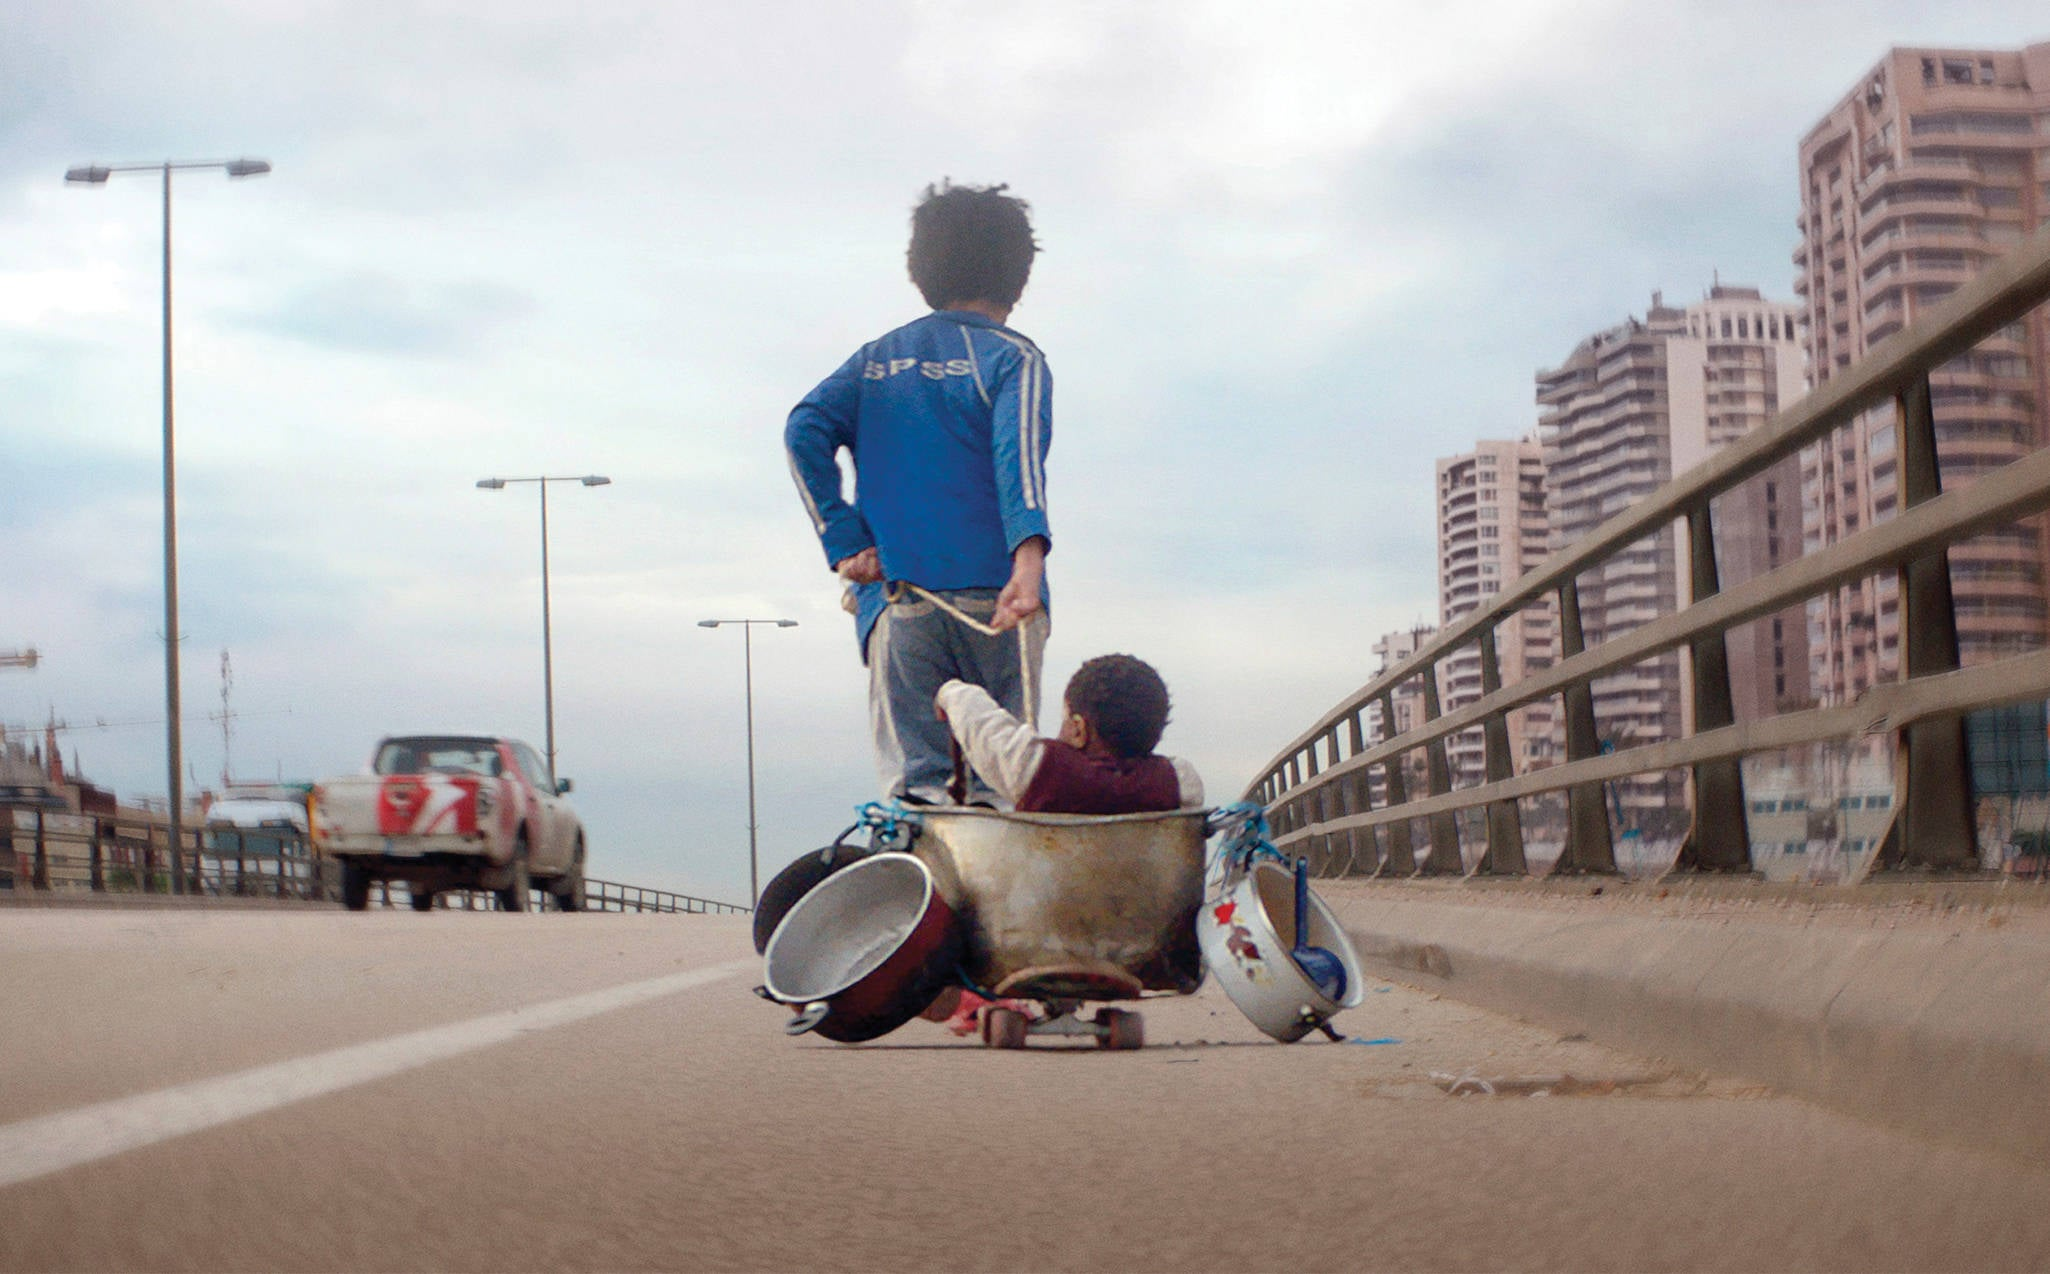 Capernaum follows the forgotten street kids and scapegraces of Beirut